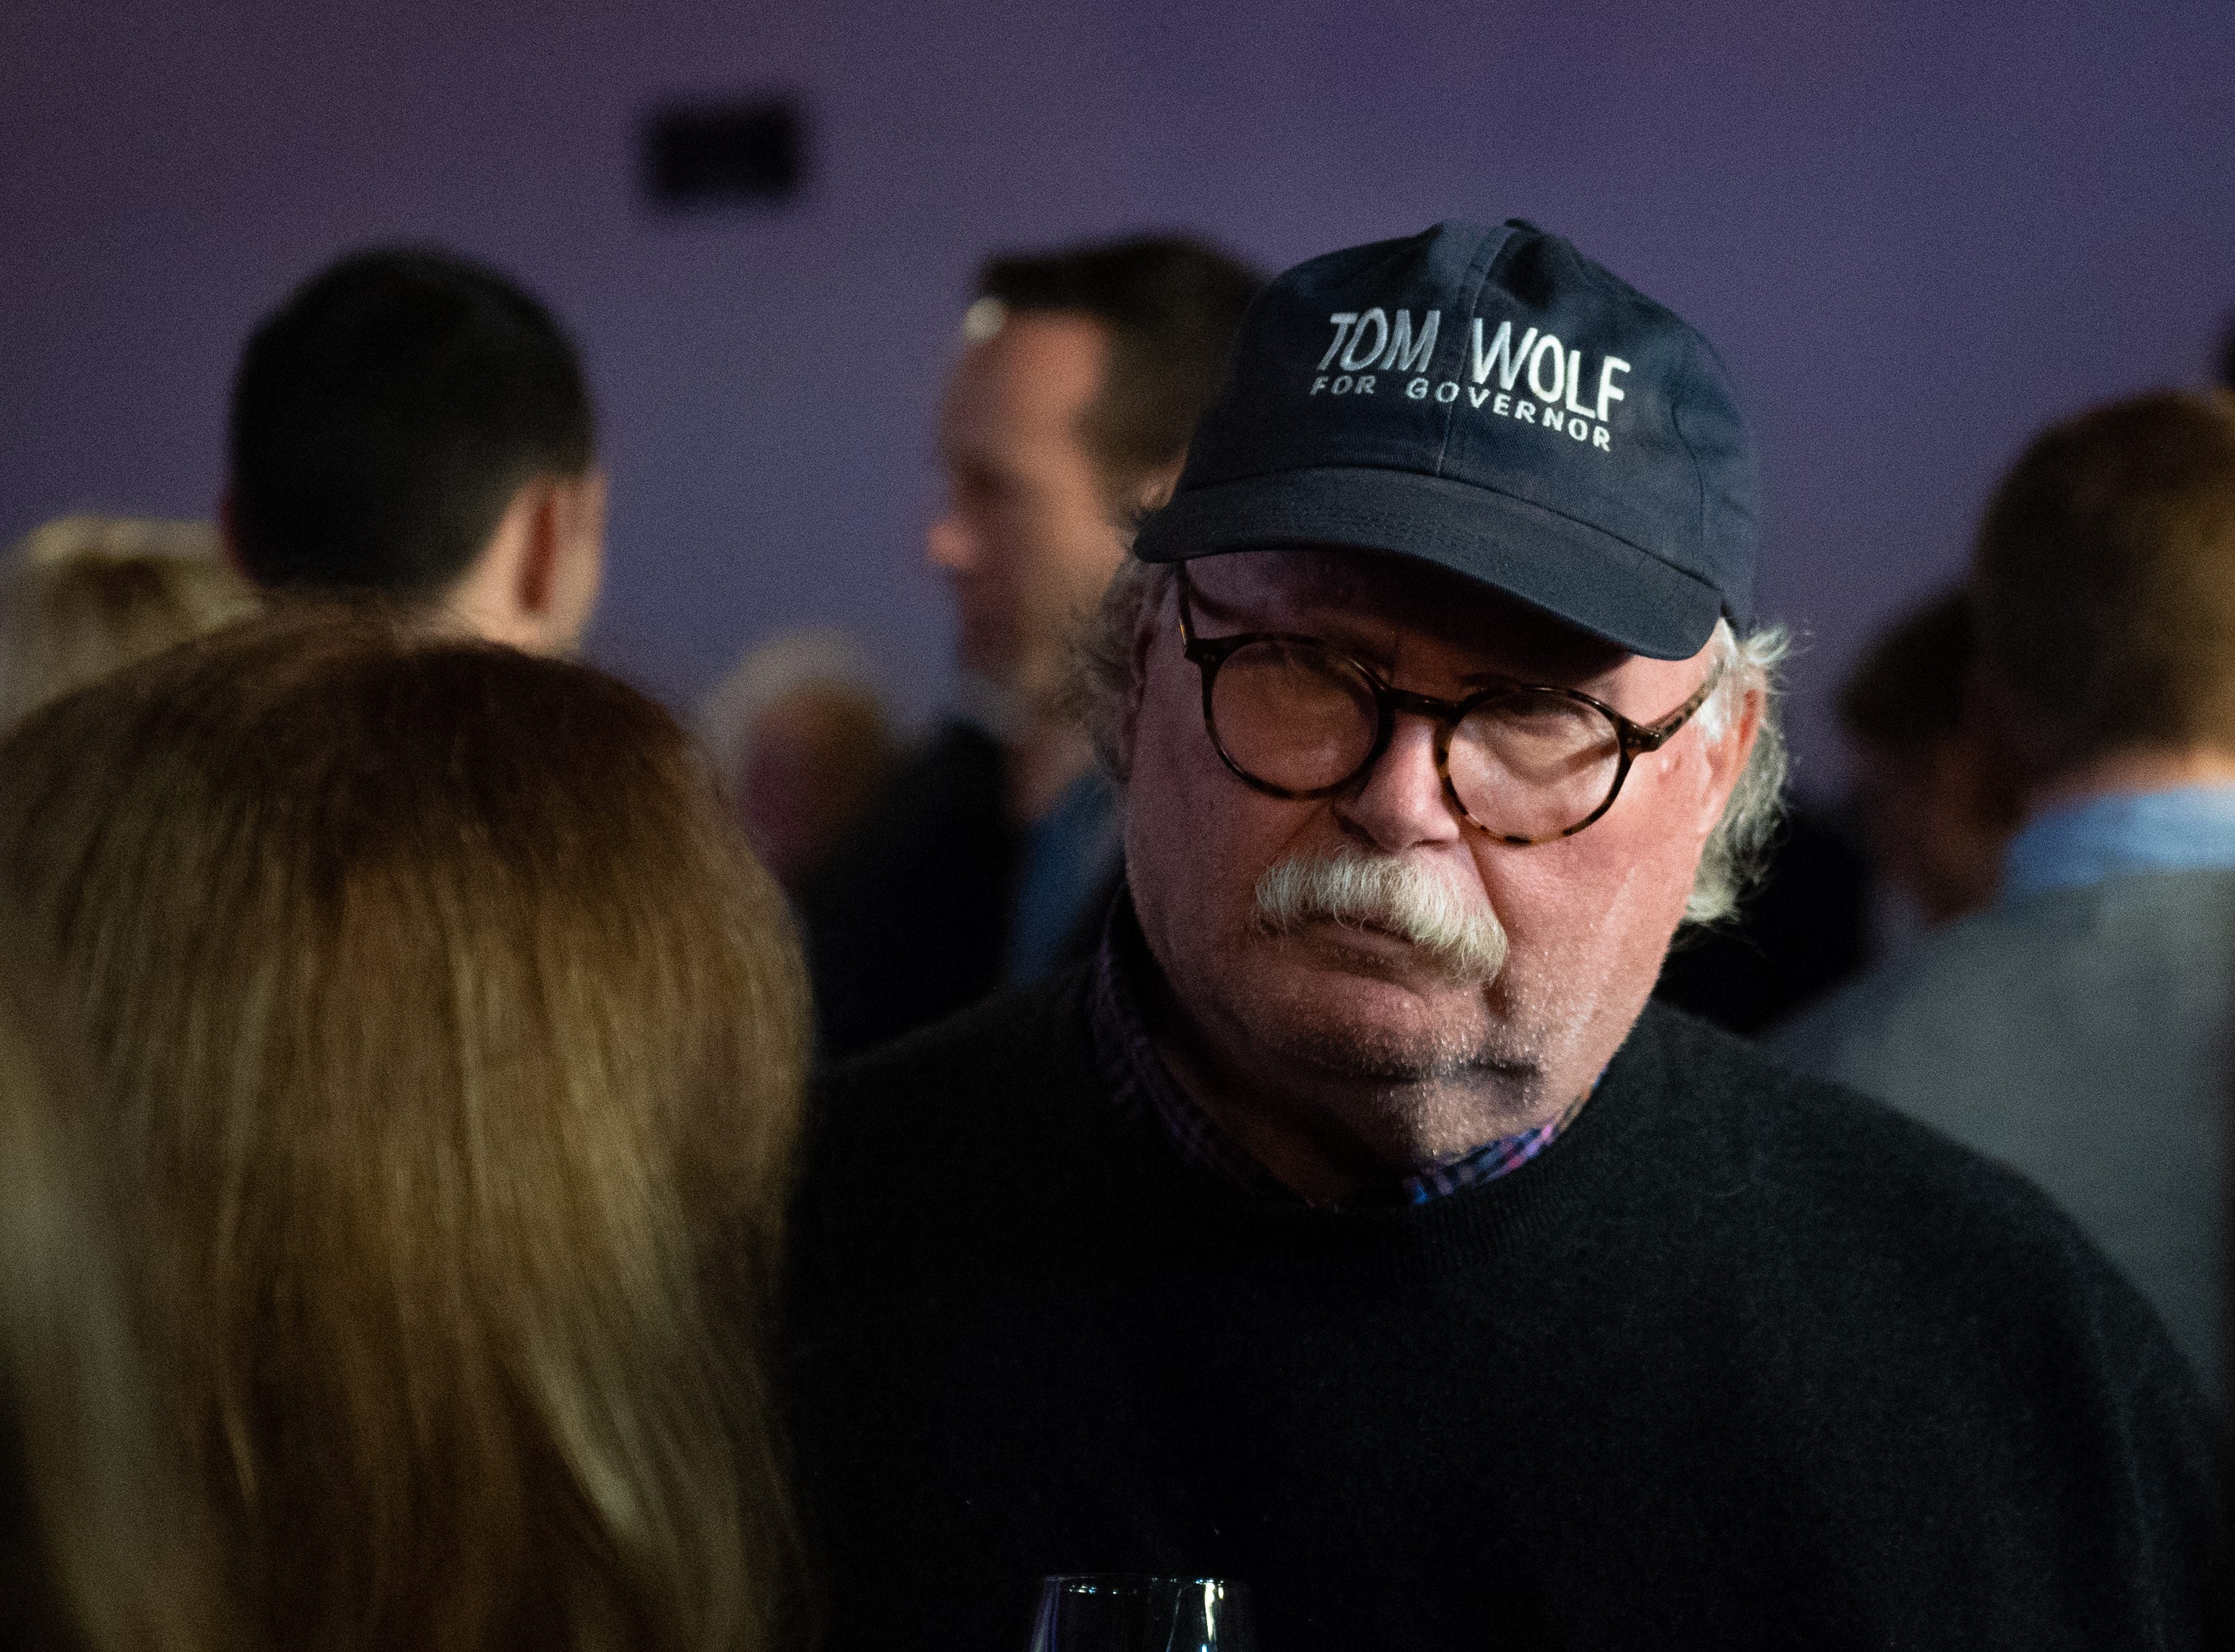 Tom Wolf themed clothing was a popular choice at the Governor Wolf and Mayor Fetterman Election Night Party, Tuesday, November 6, 2018. Tom Wolf was re-elected as Governor of Pennsylvania after defeating Scott Wagner.